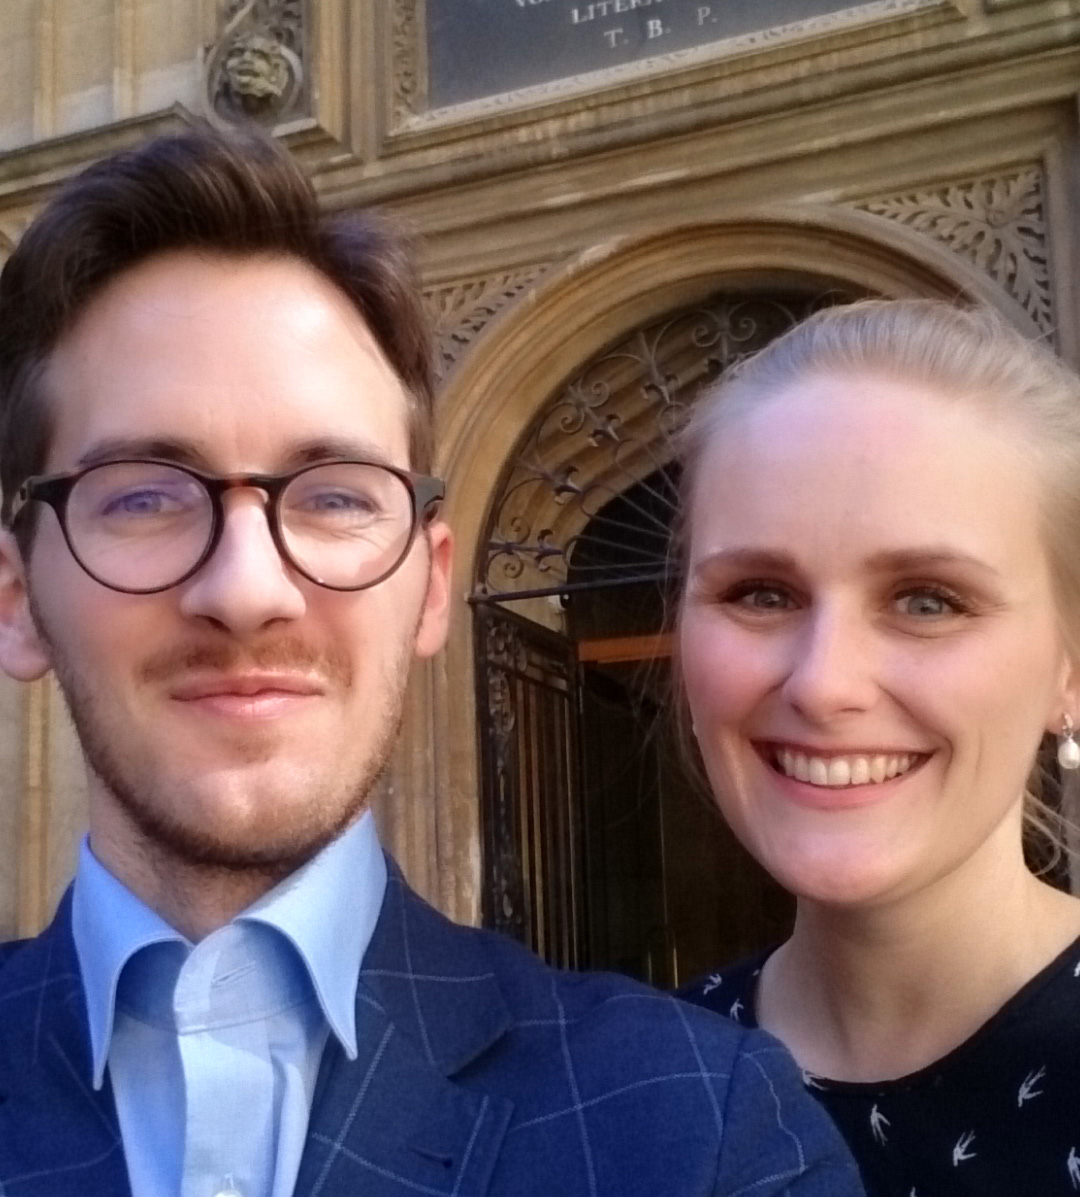 PhD students Peter Astruo Sundt and Iris Brecke